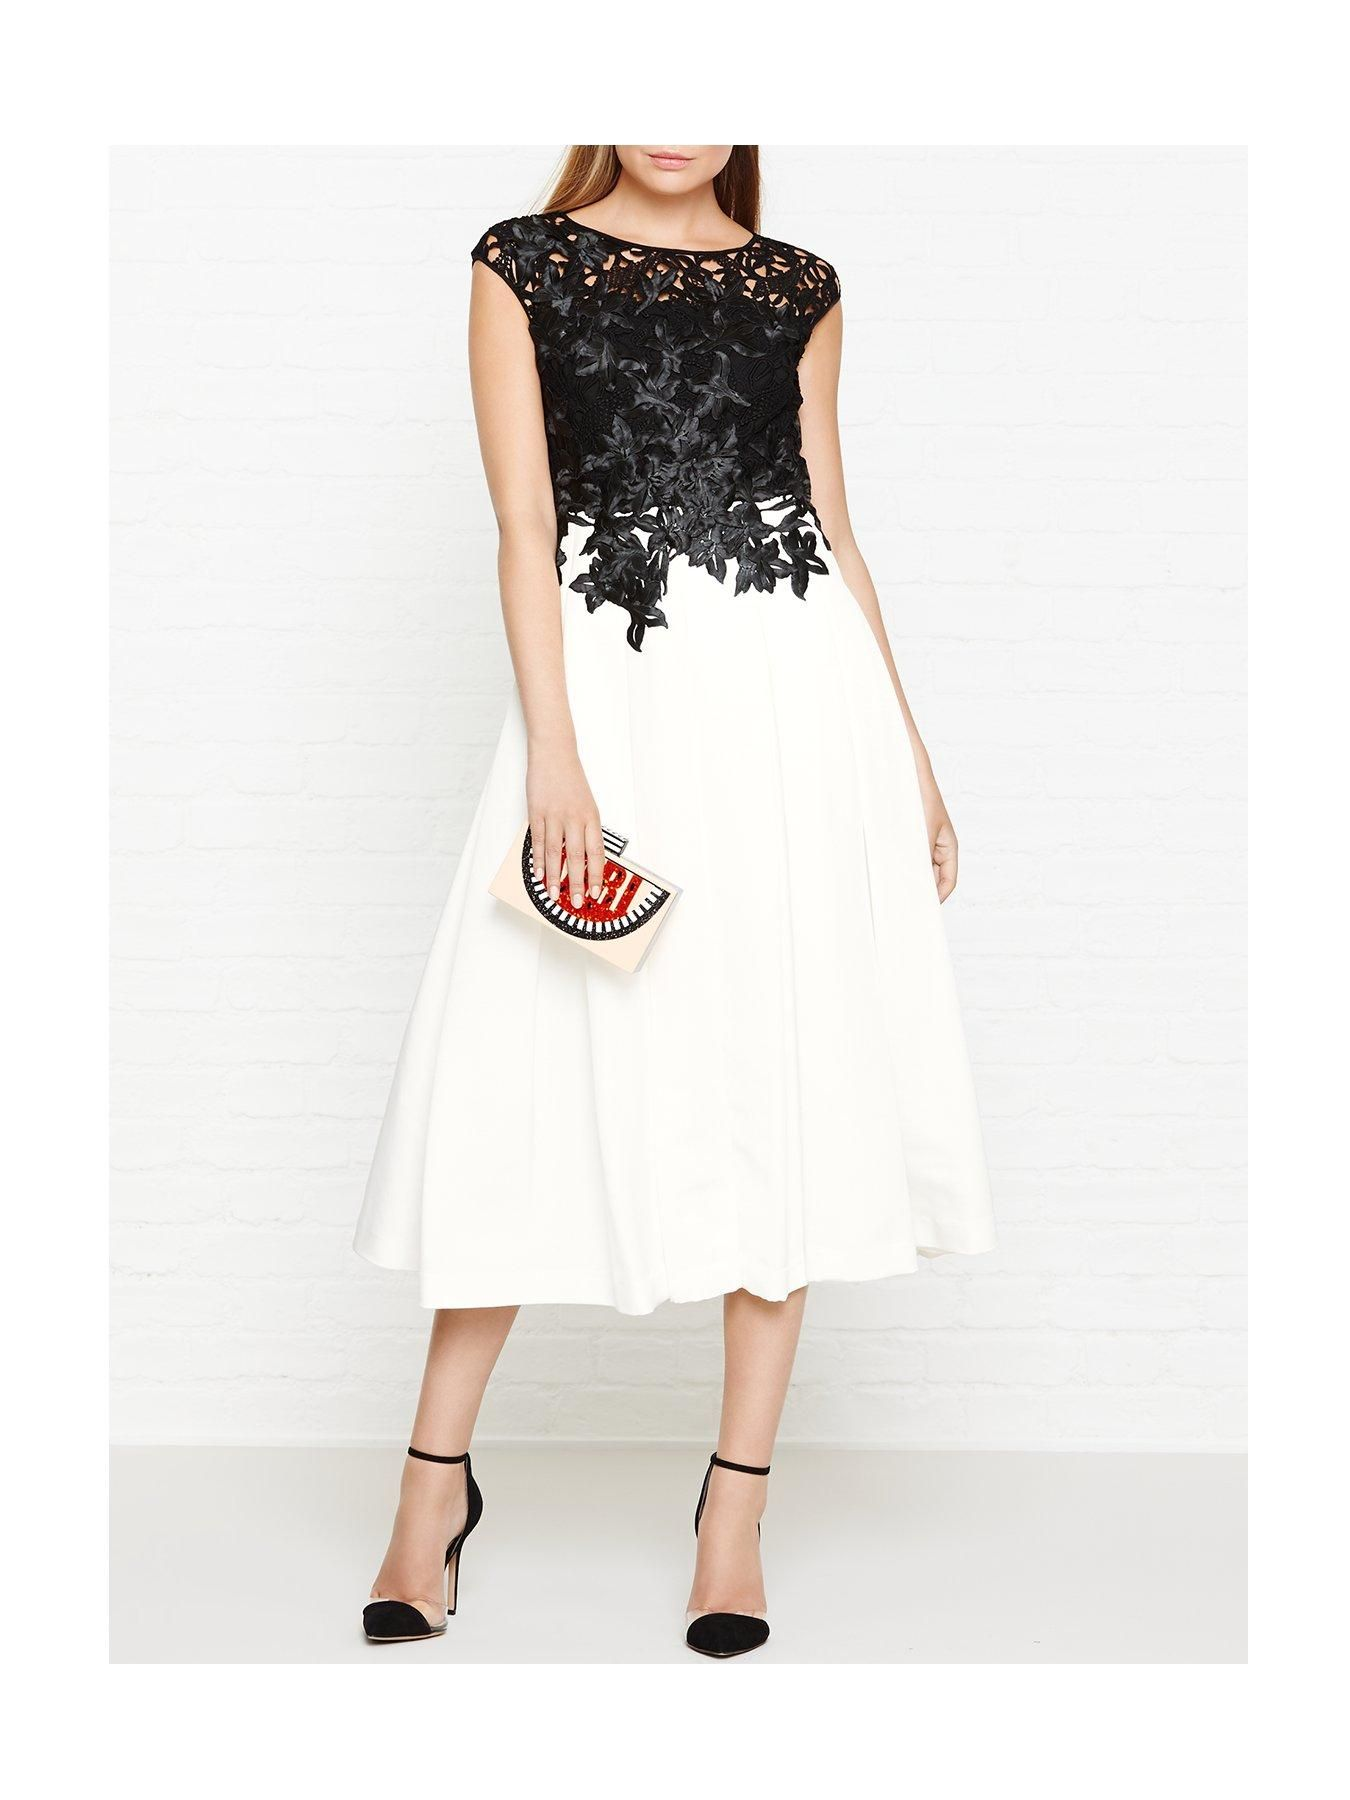 bc0f0243560505 Ted Baker Ilsa Applique Lace Body Dress - Black WhiteSize   Fit True to  size - order your usual sizeBoned body with a slim fit and a wide